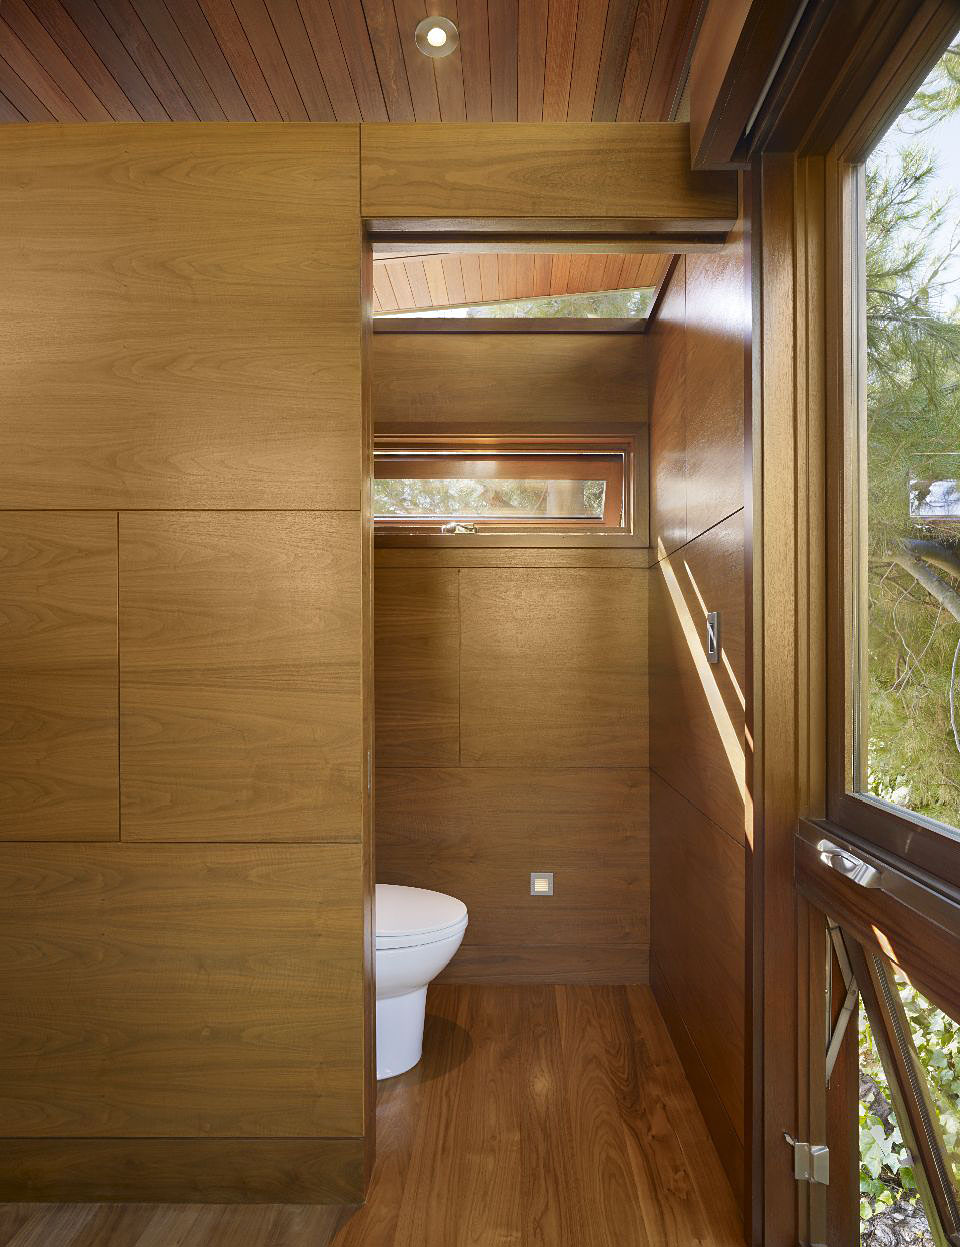 The Banyan Treehouse by Rockefeller Partners Architects